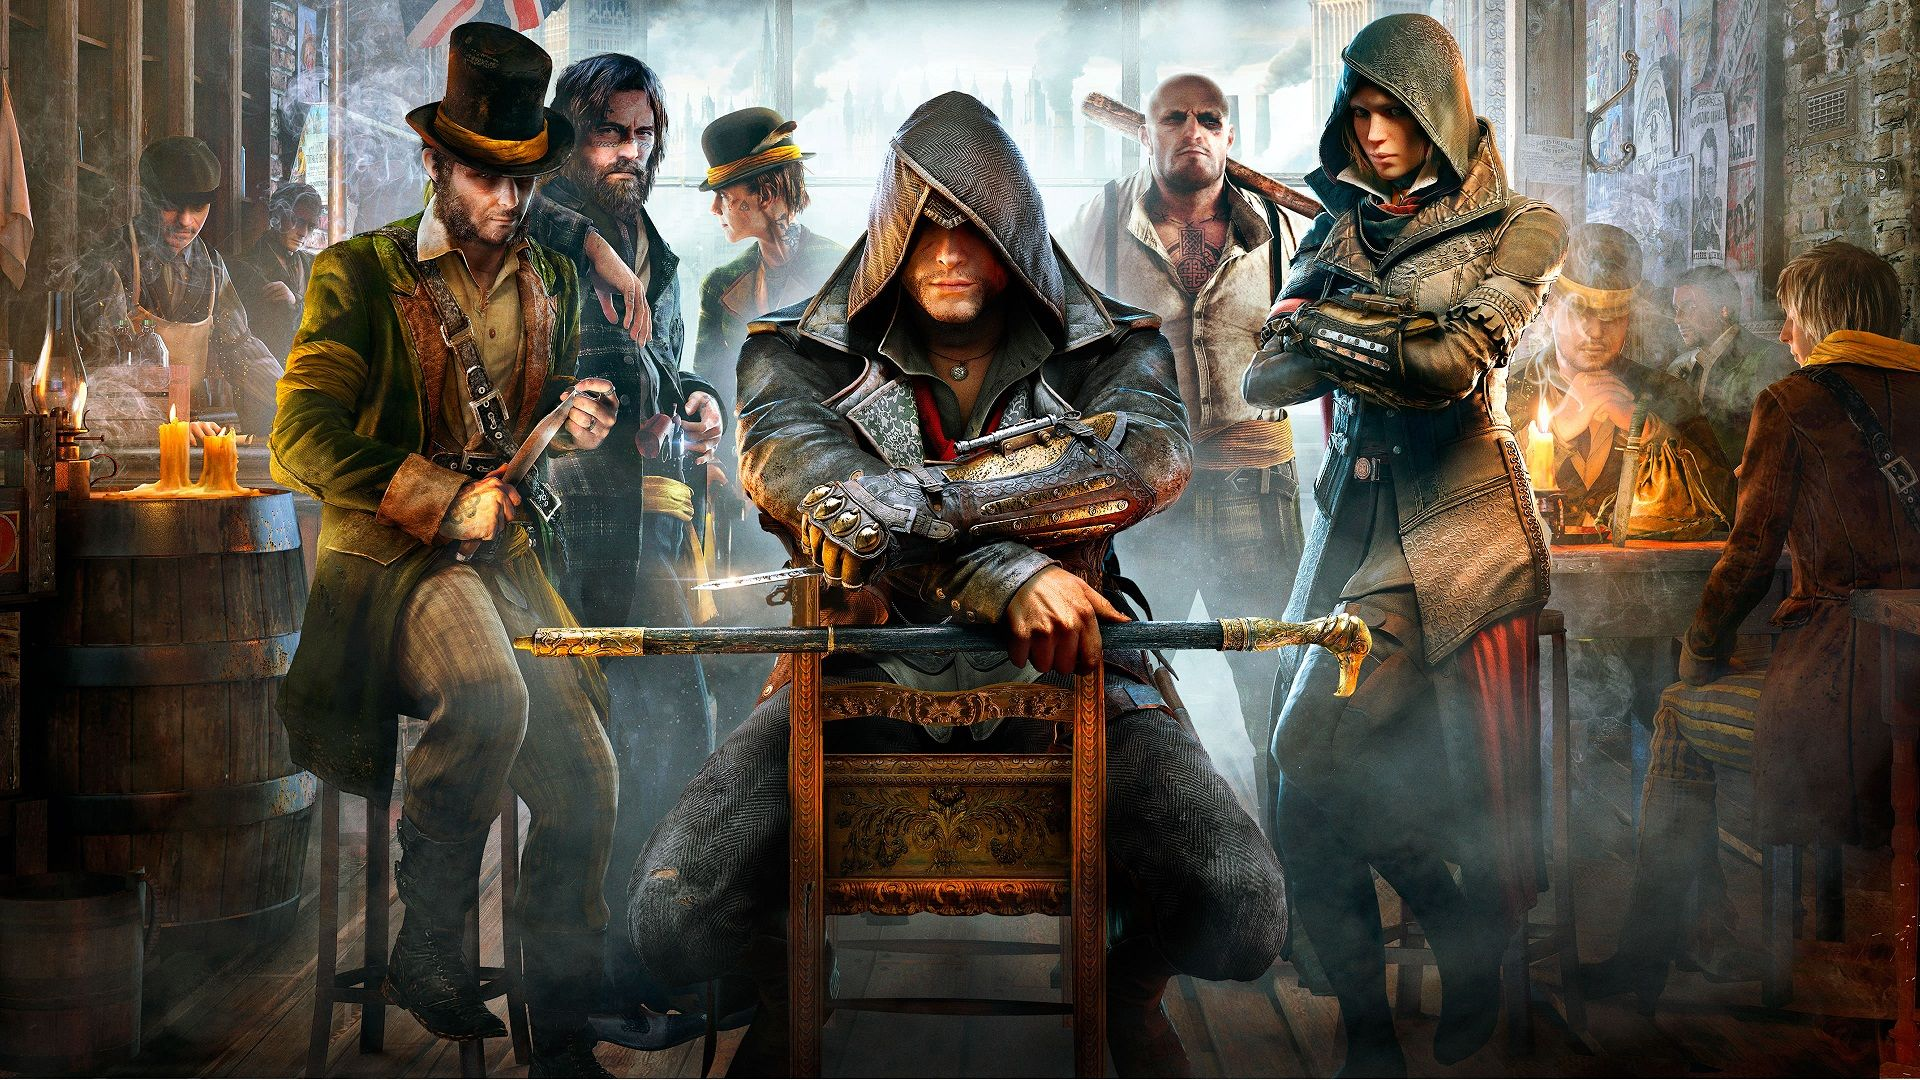 Assassin S Creed Syndicate Wallpaper Hd Assassins Creed Assassins Creed Syndicate Assassin S Creed Wallpaper